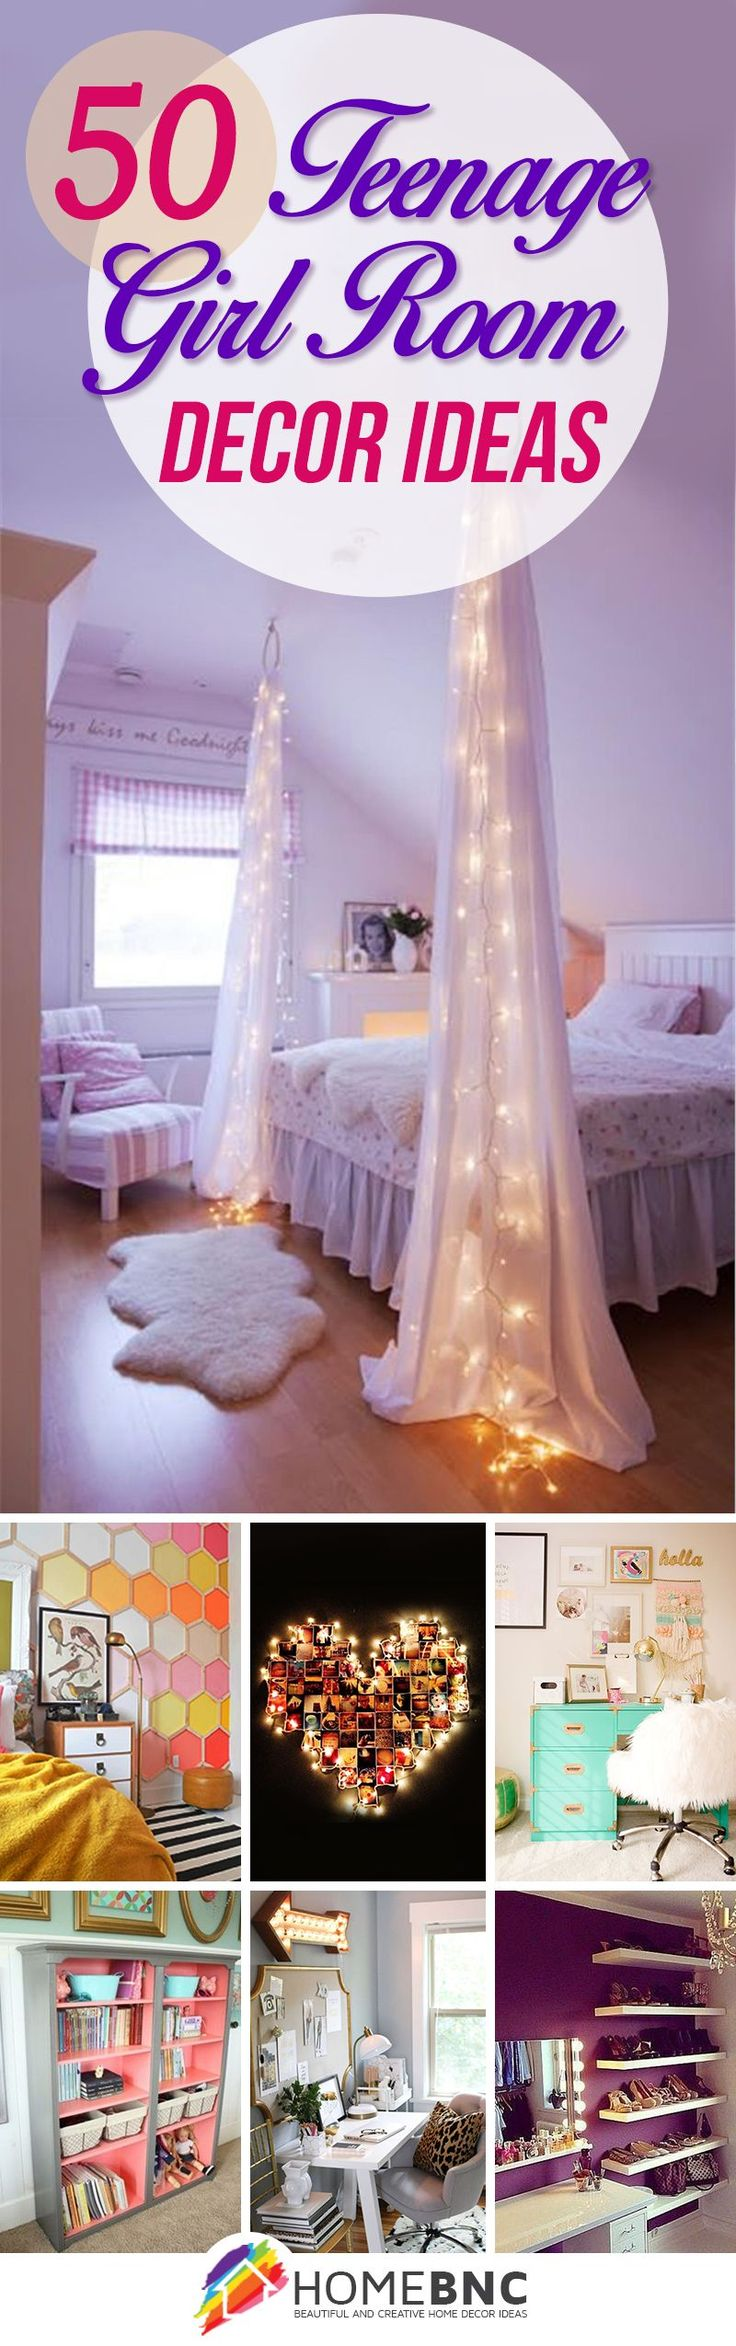 17 Best ideas about Girls Bedroom Decorating on Pinterest   Girls bedroom  Girl  rooms and Toddler bedroom ideas. 17 Best ideas about Girls Bedroom Decorating on Pinterest   Girls